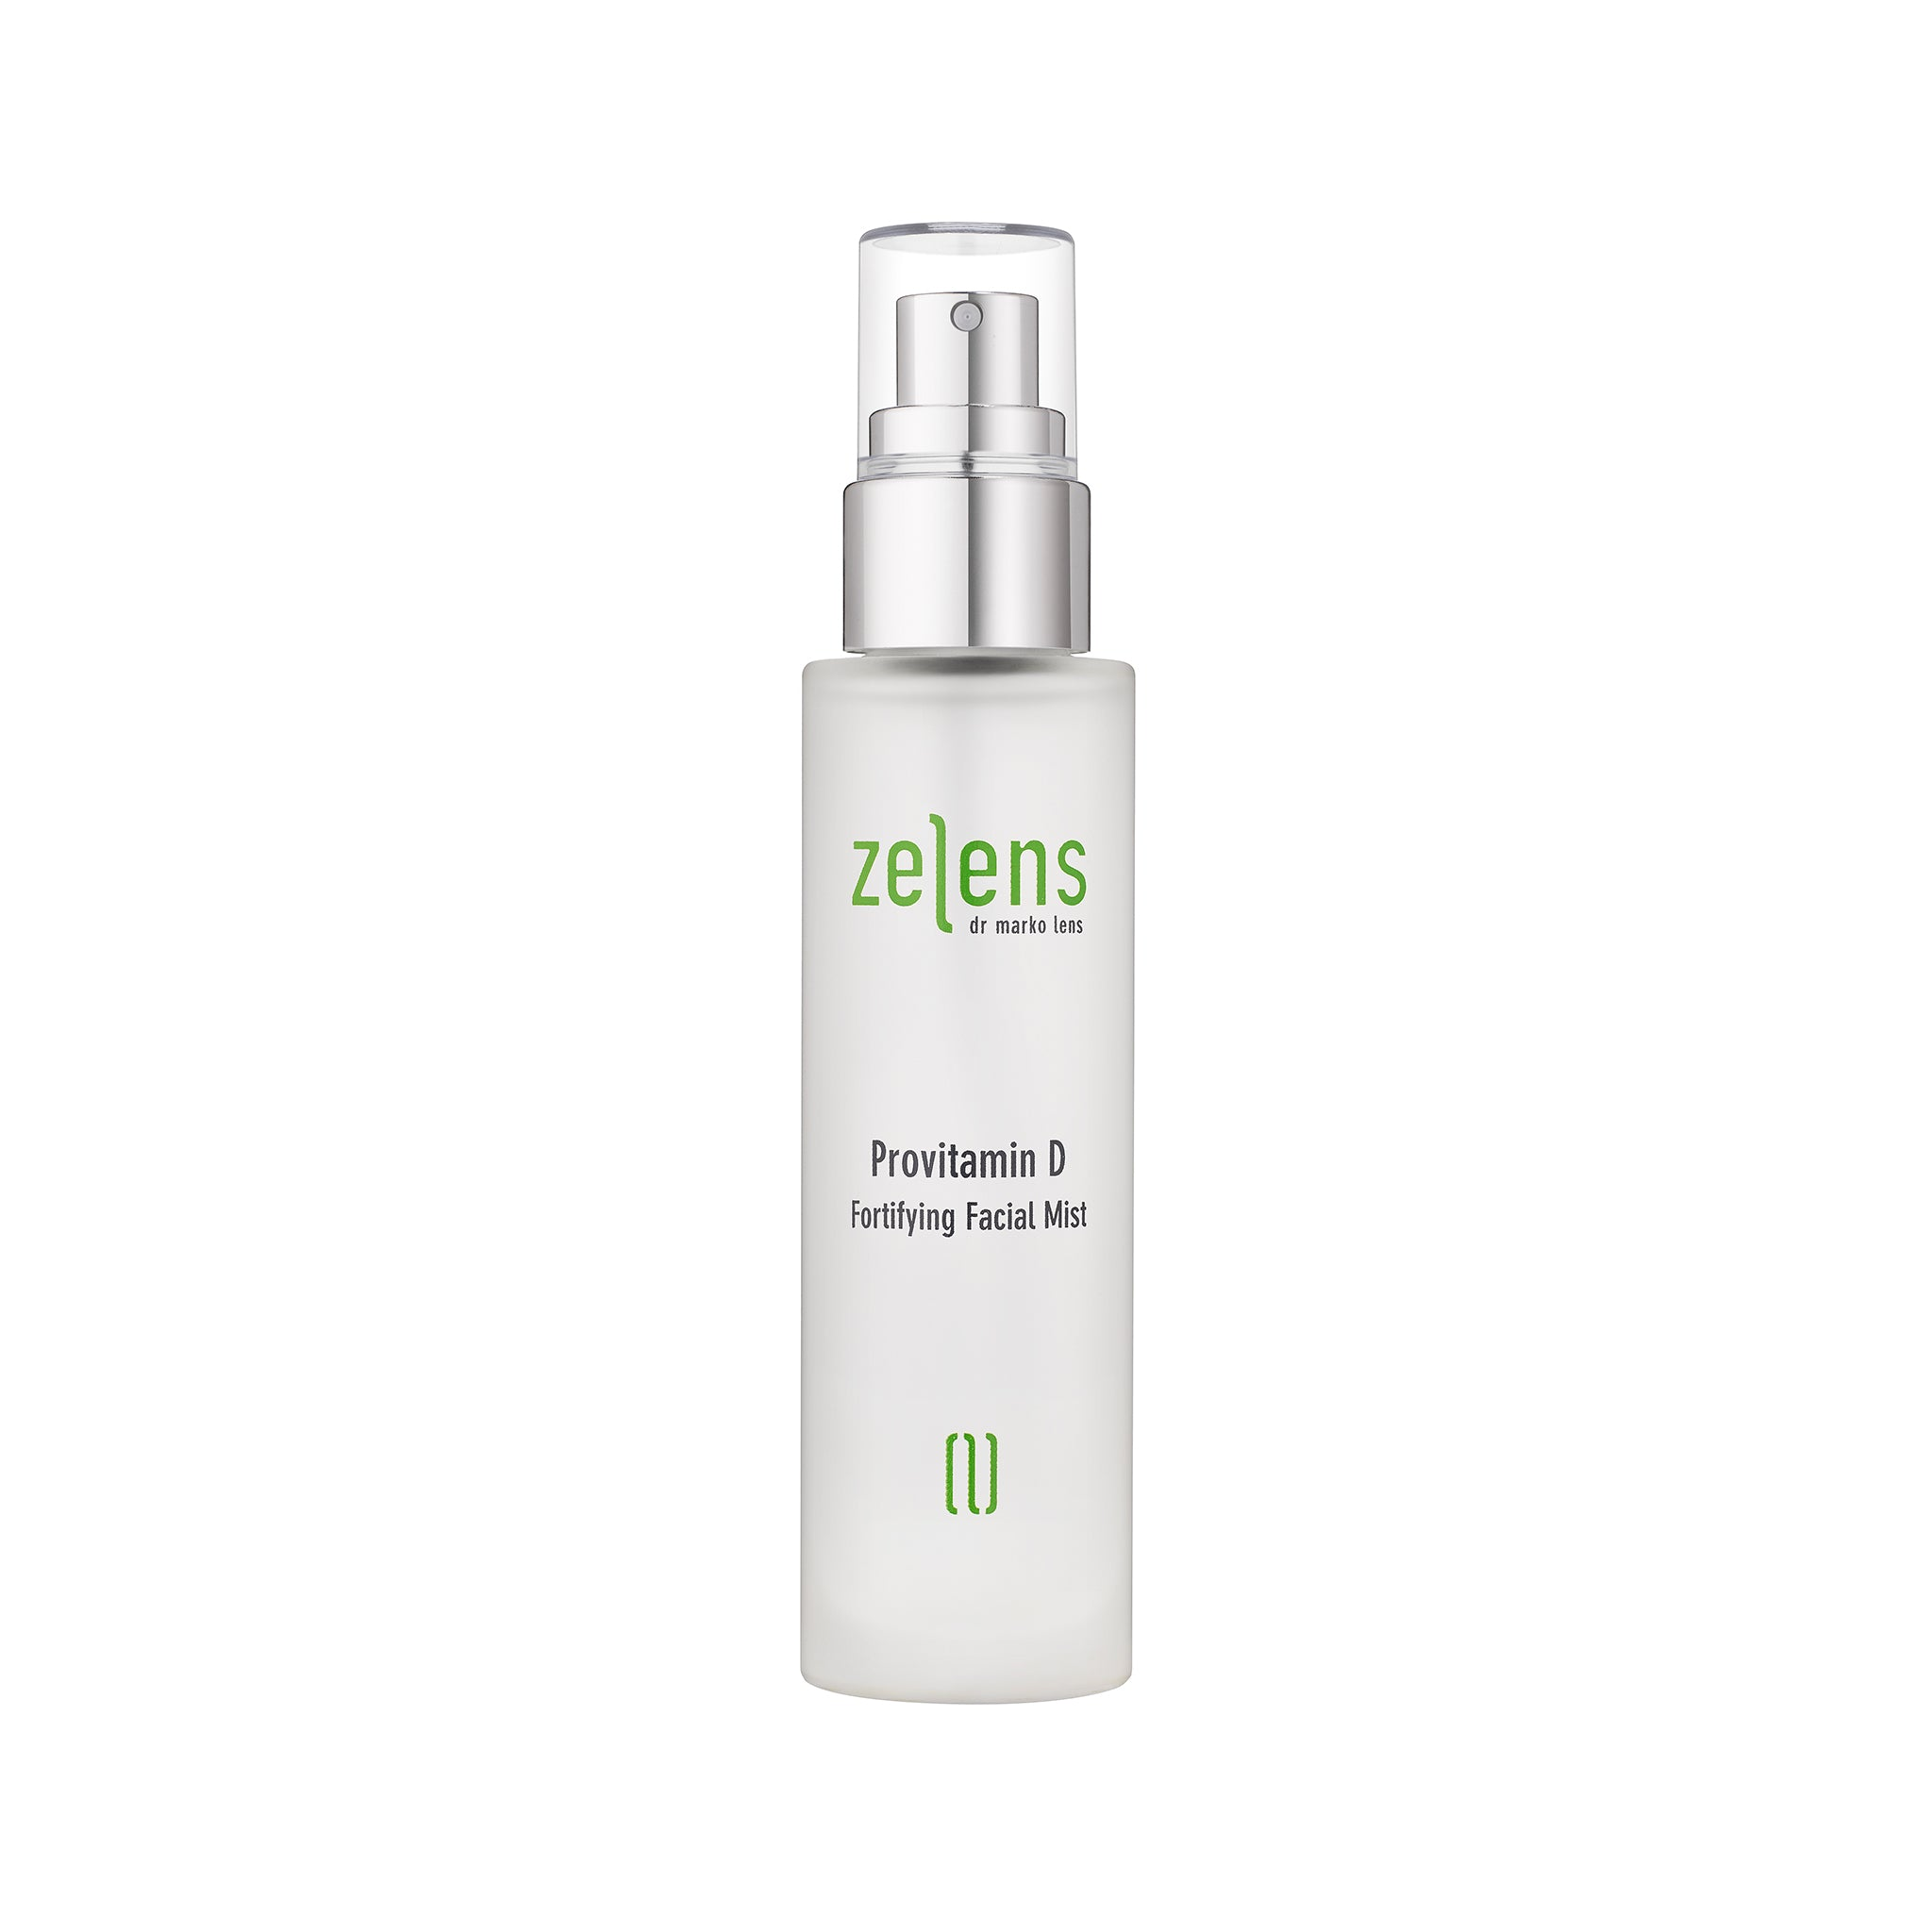 Provitamin D Fortifying Facial Mist